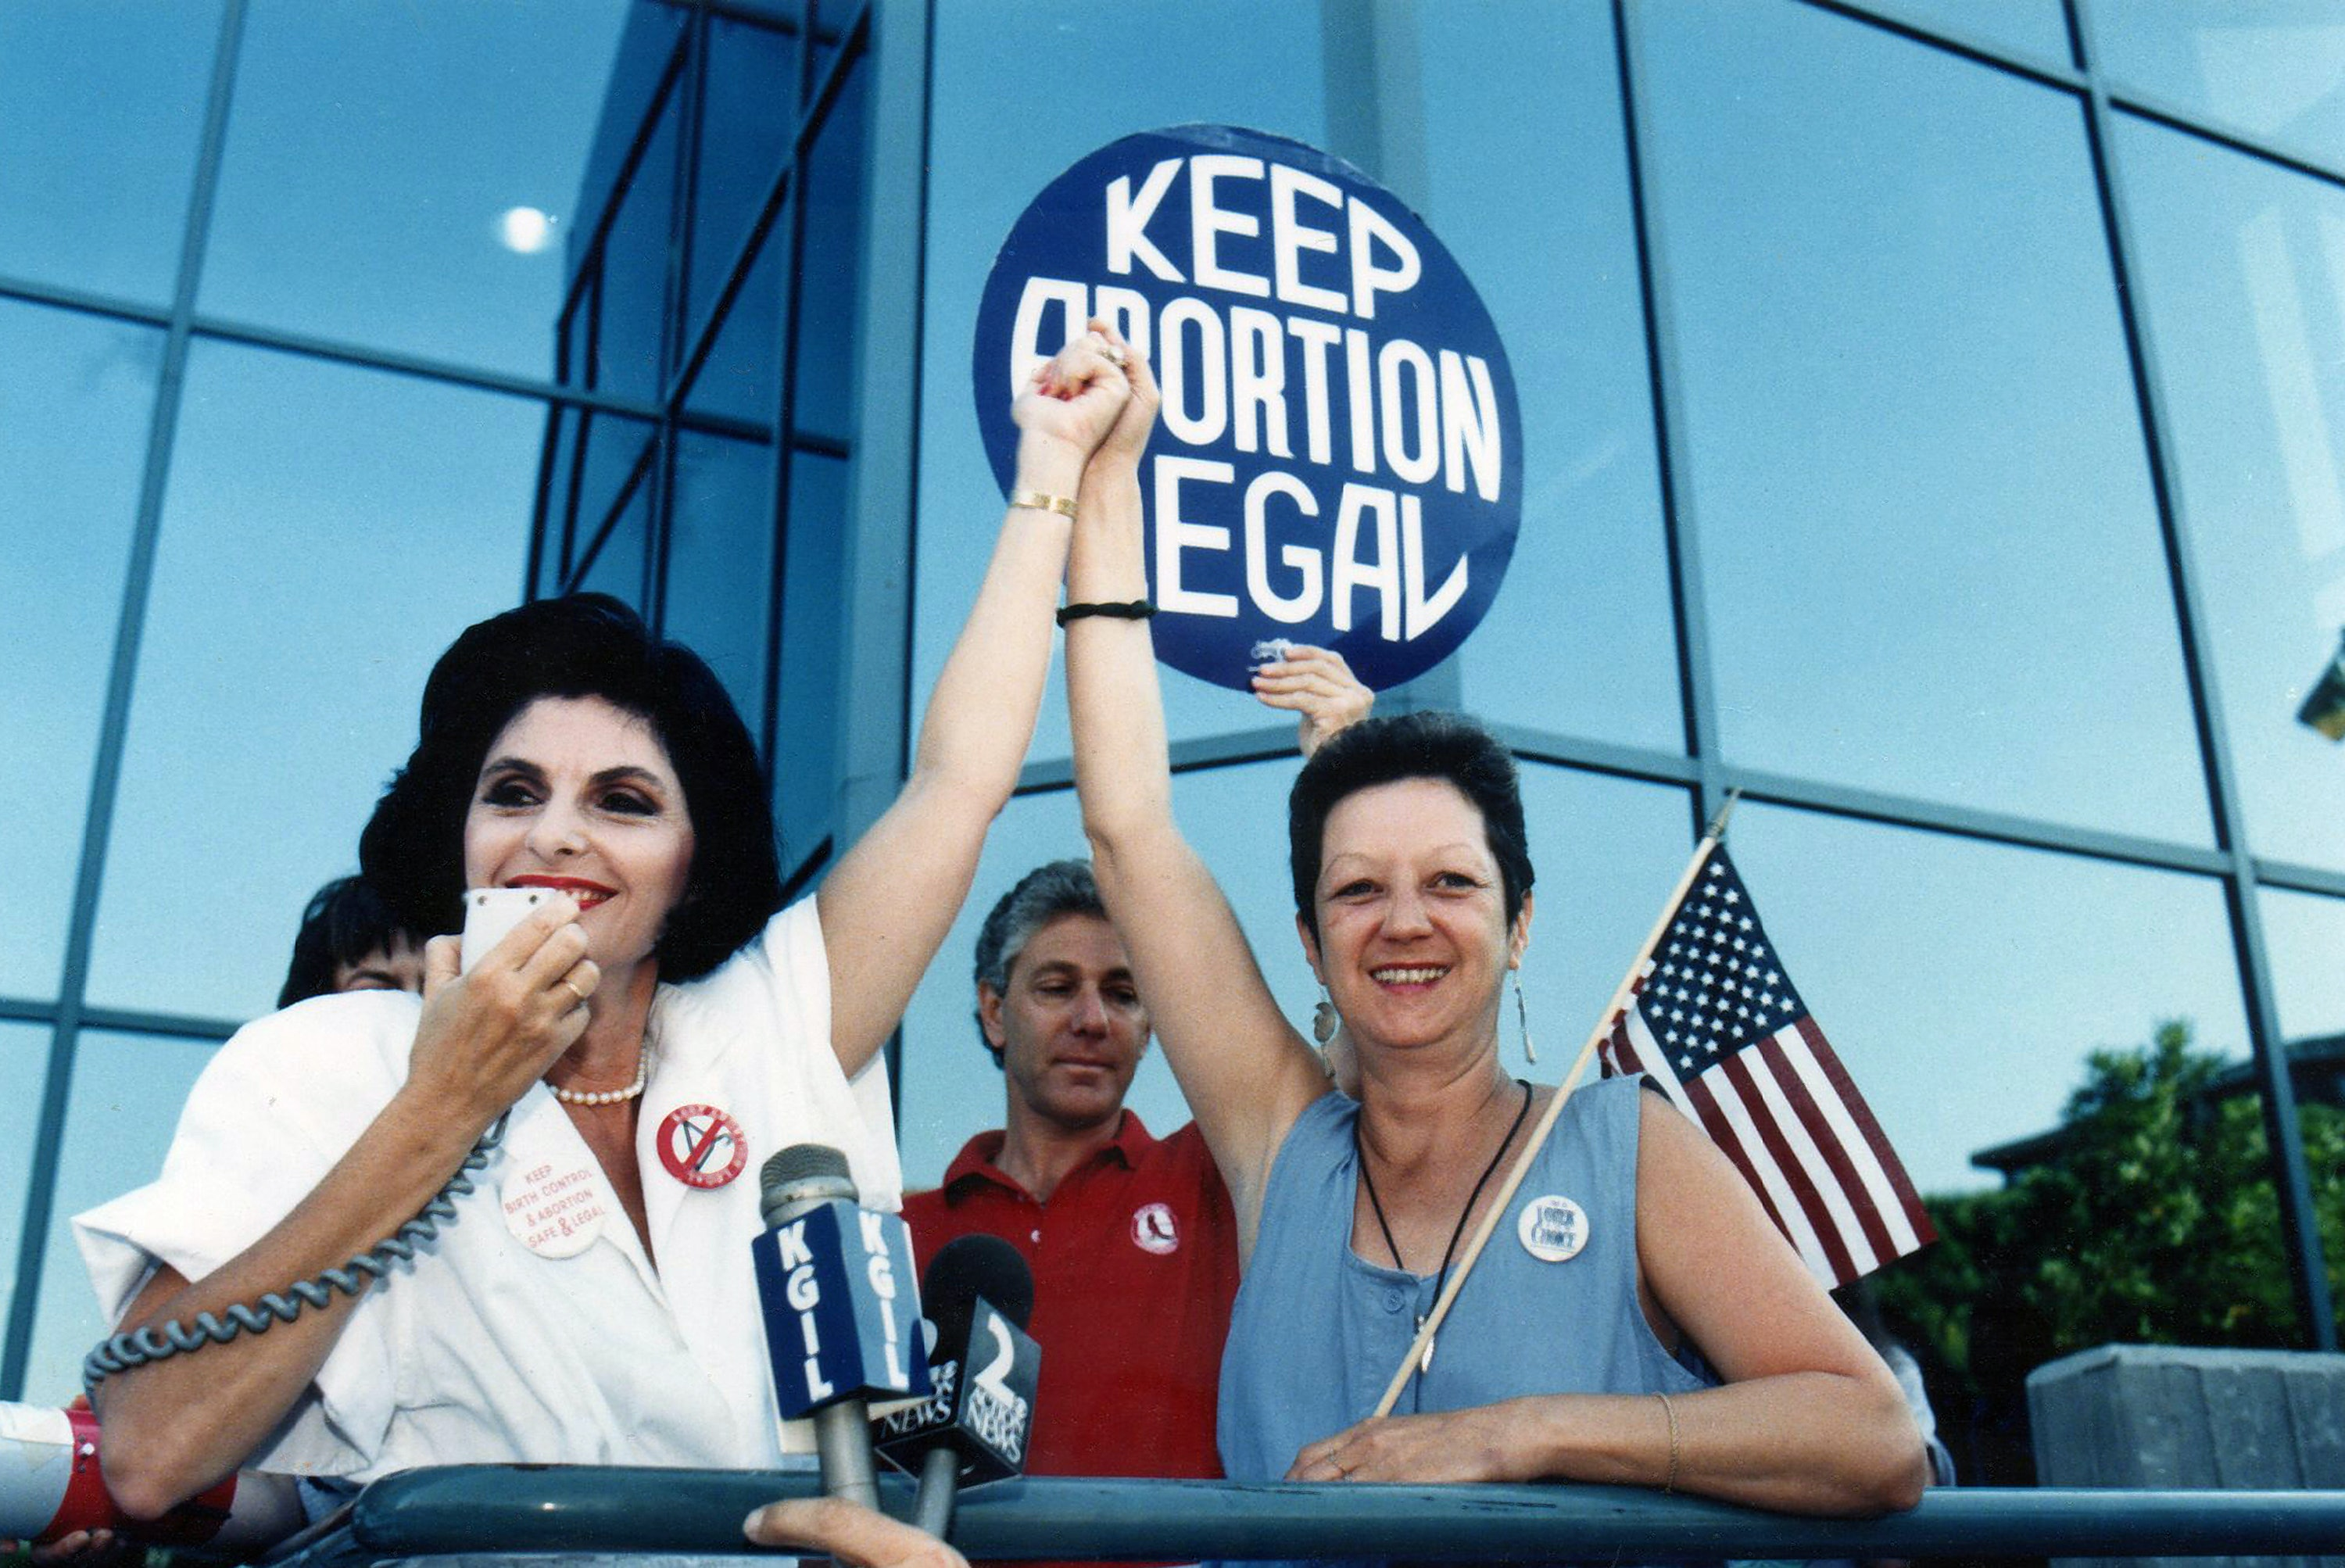 Norma McCorvey, plaintiff in Roe v. Wade abortion ruling, dies at 69